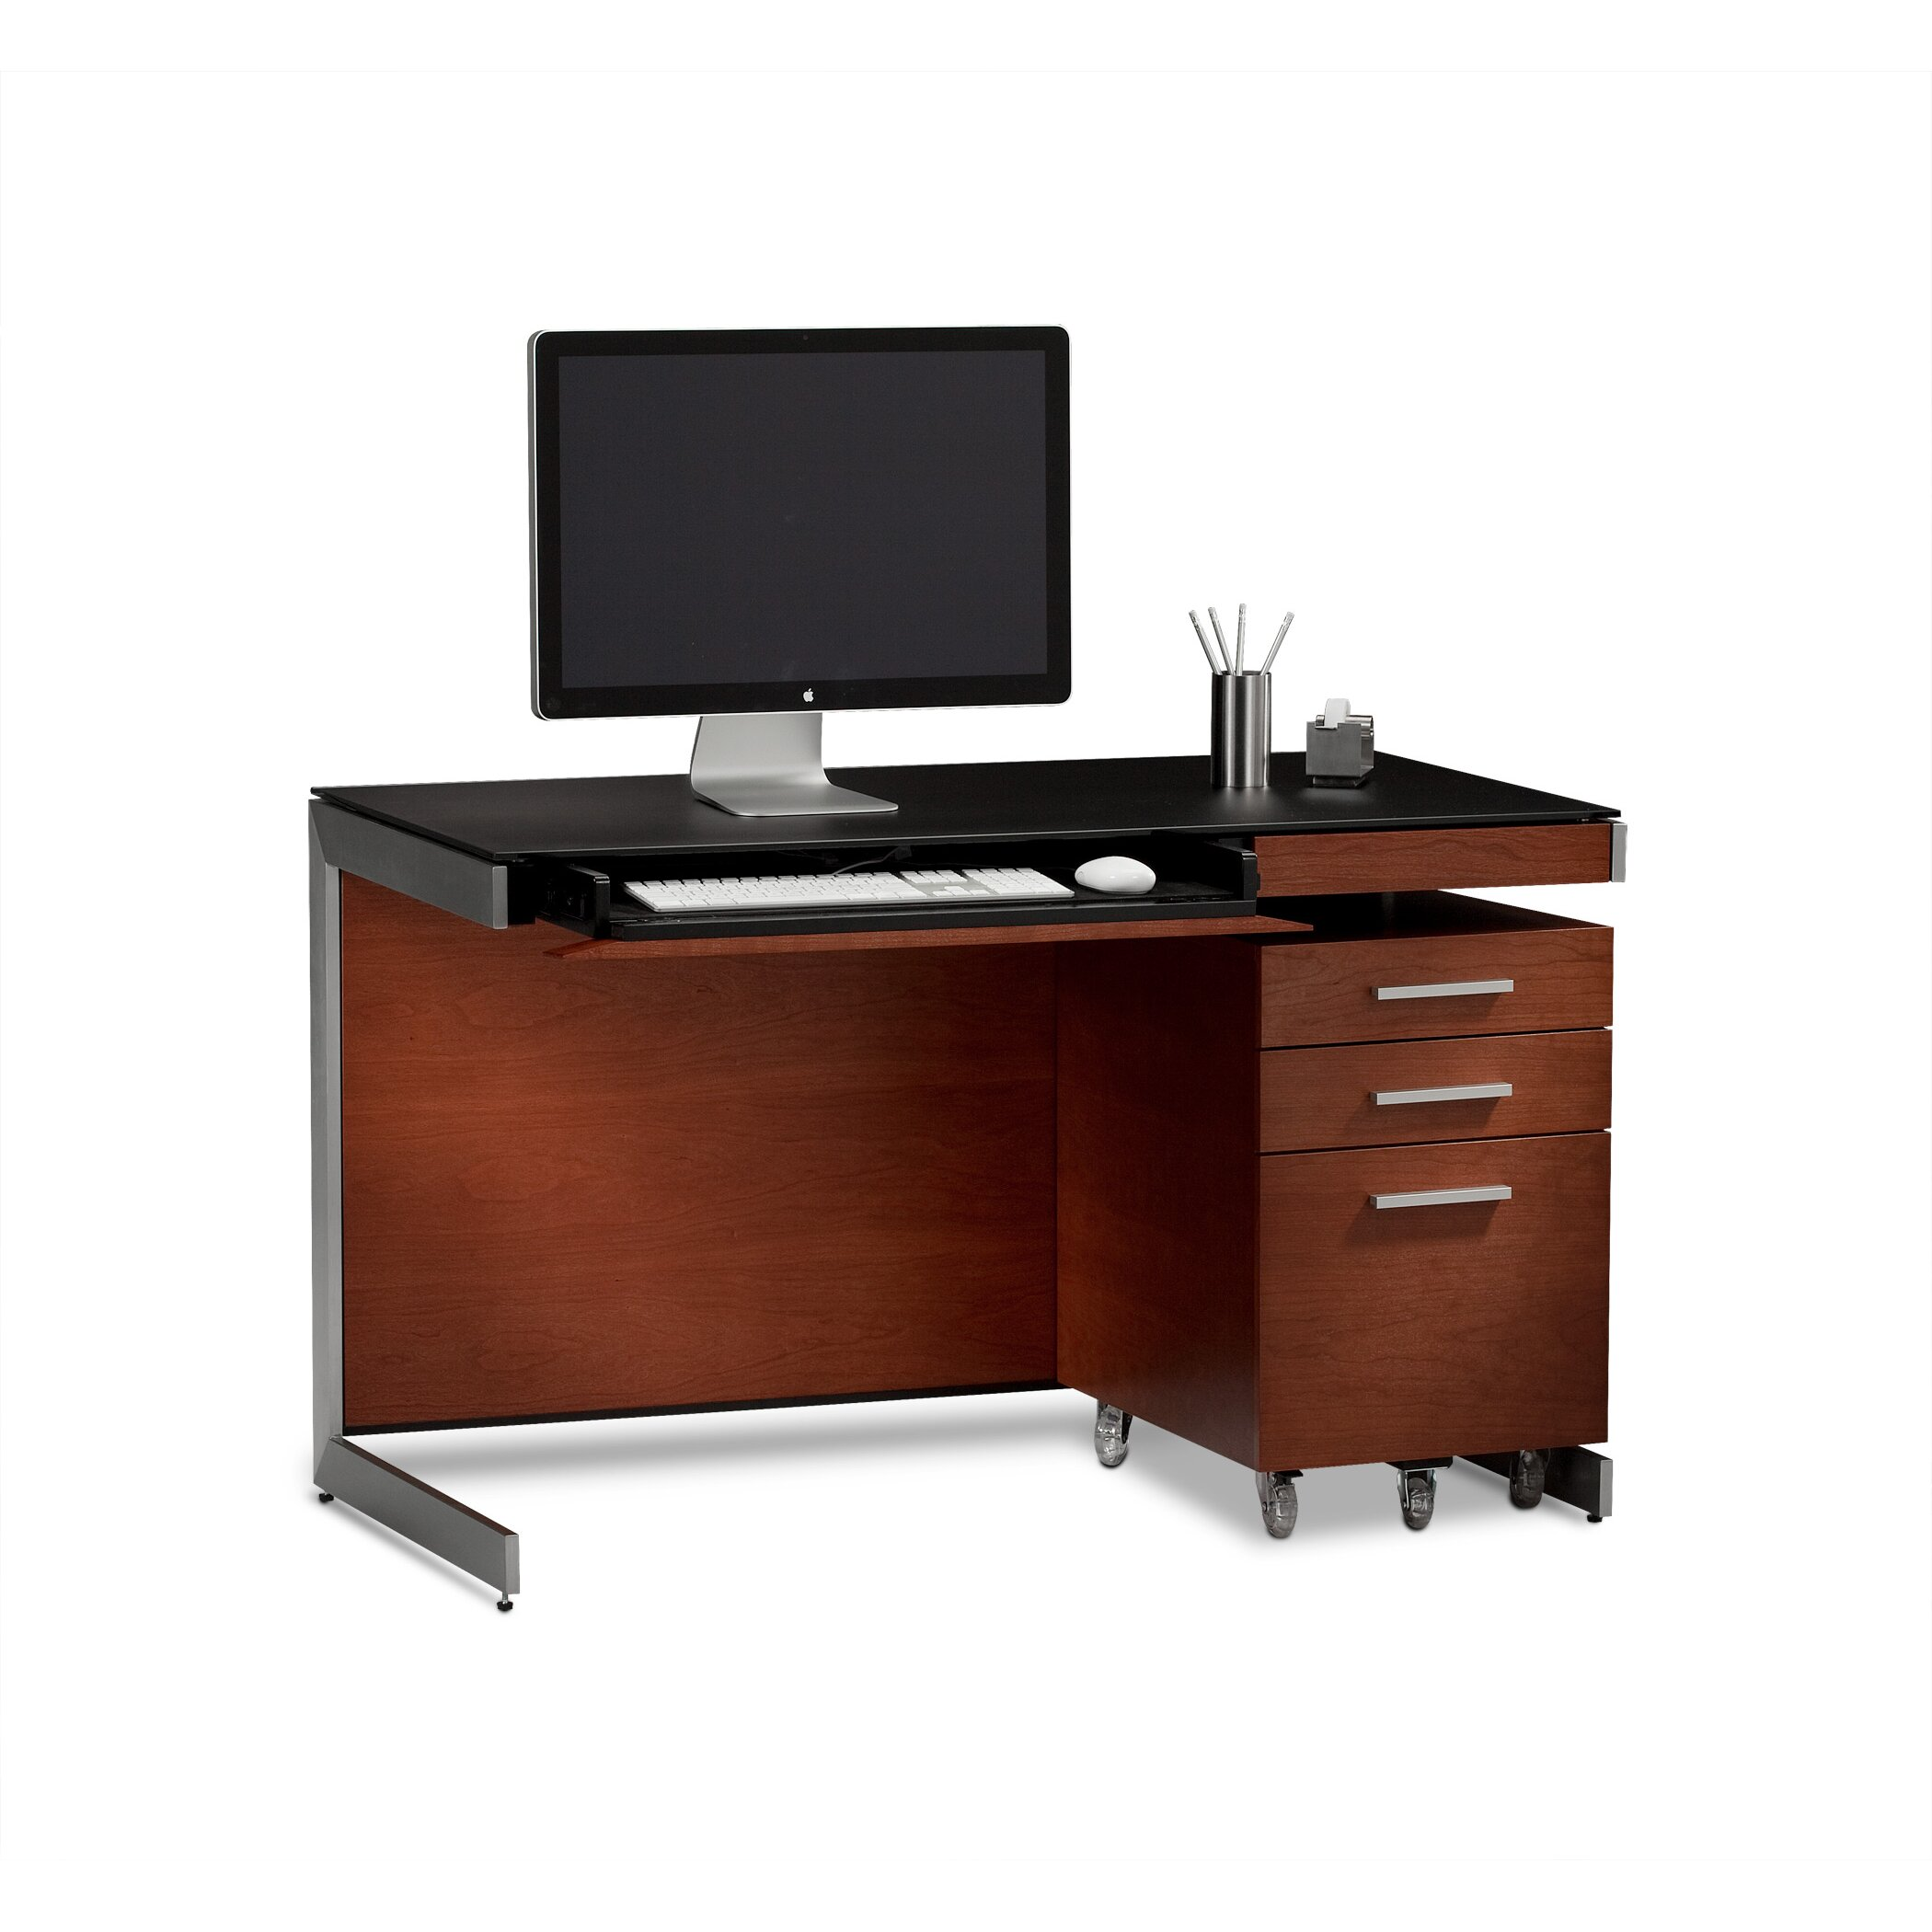 Bdi Usa Sequel Compact Desk Reviews Allmodern